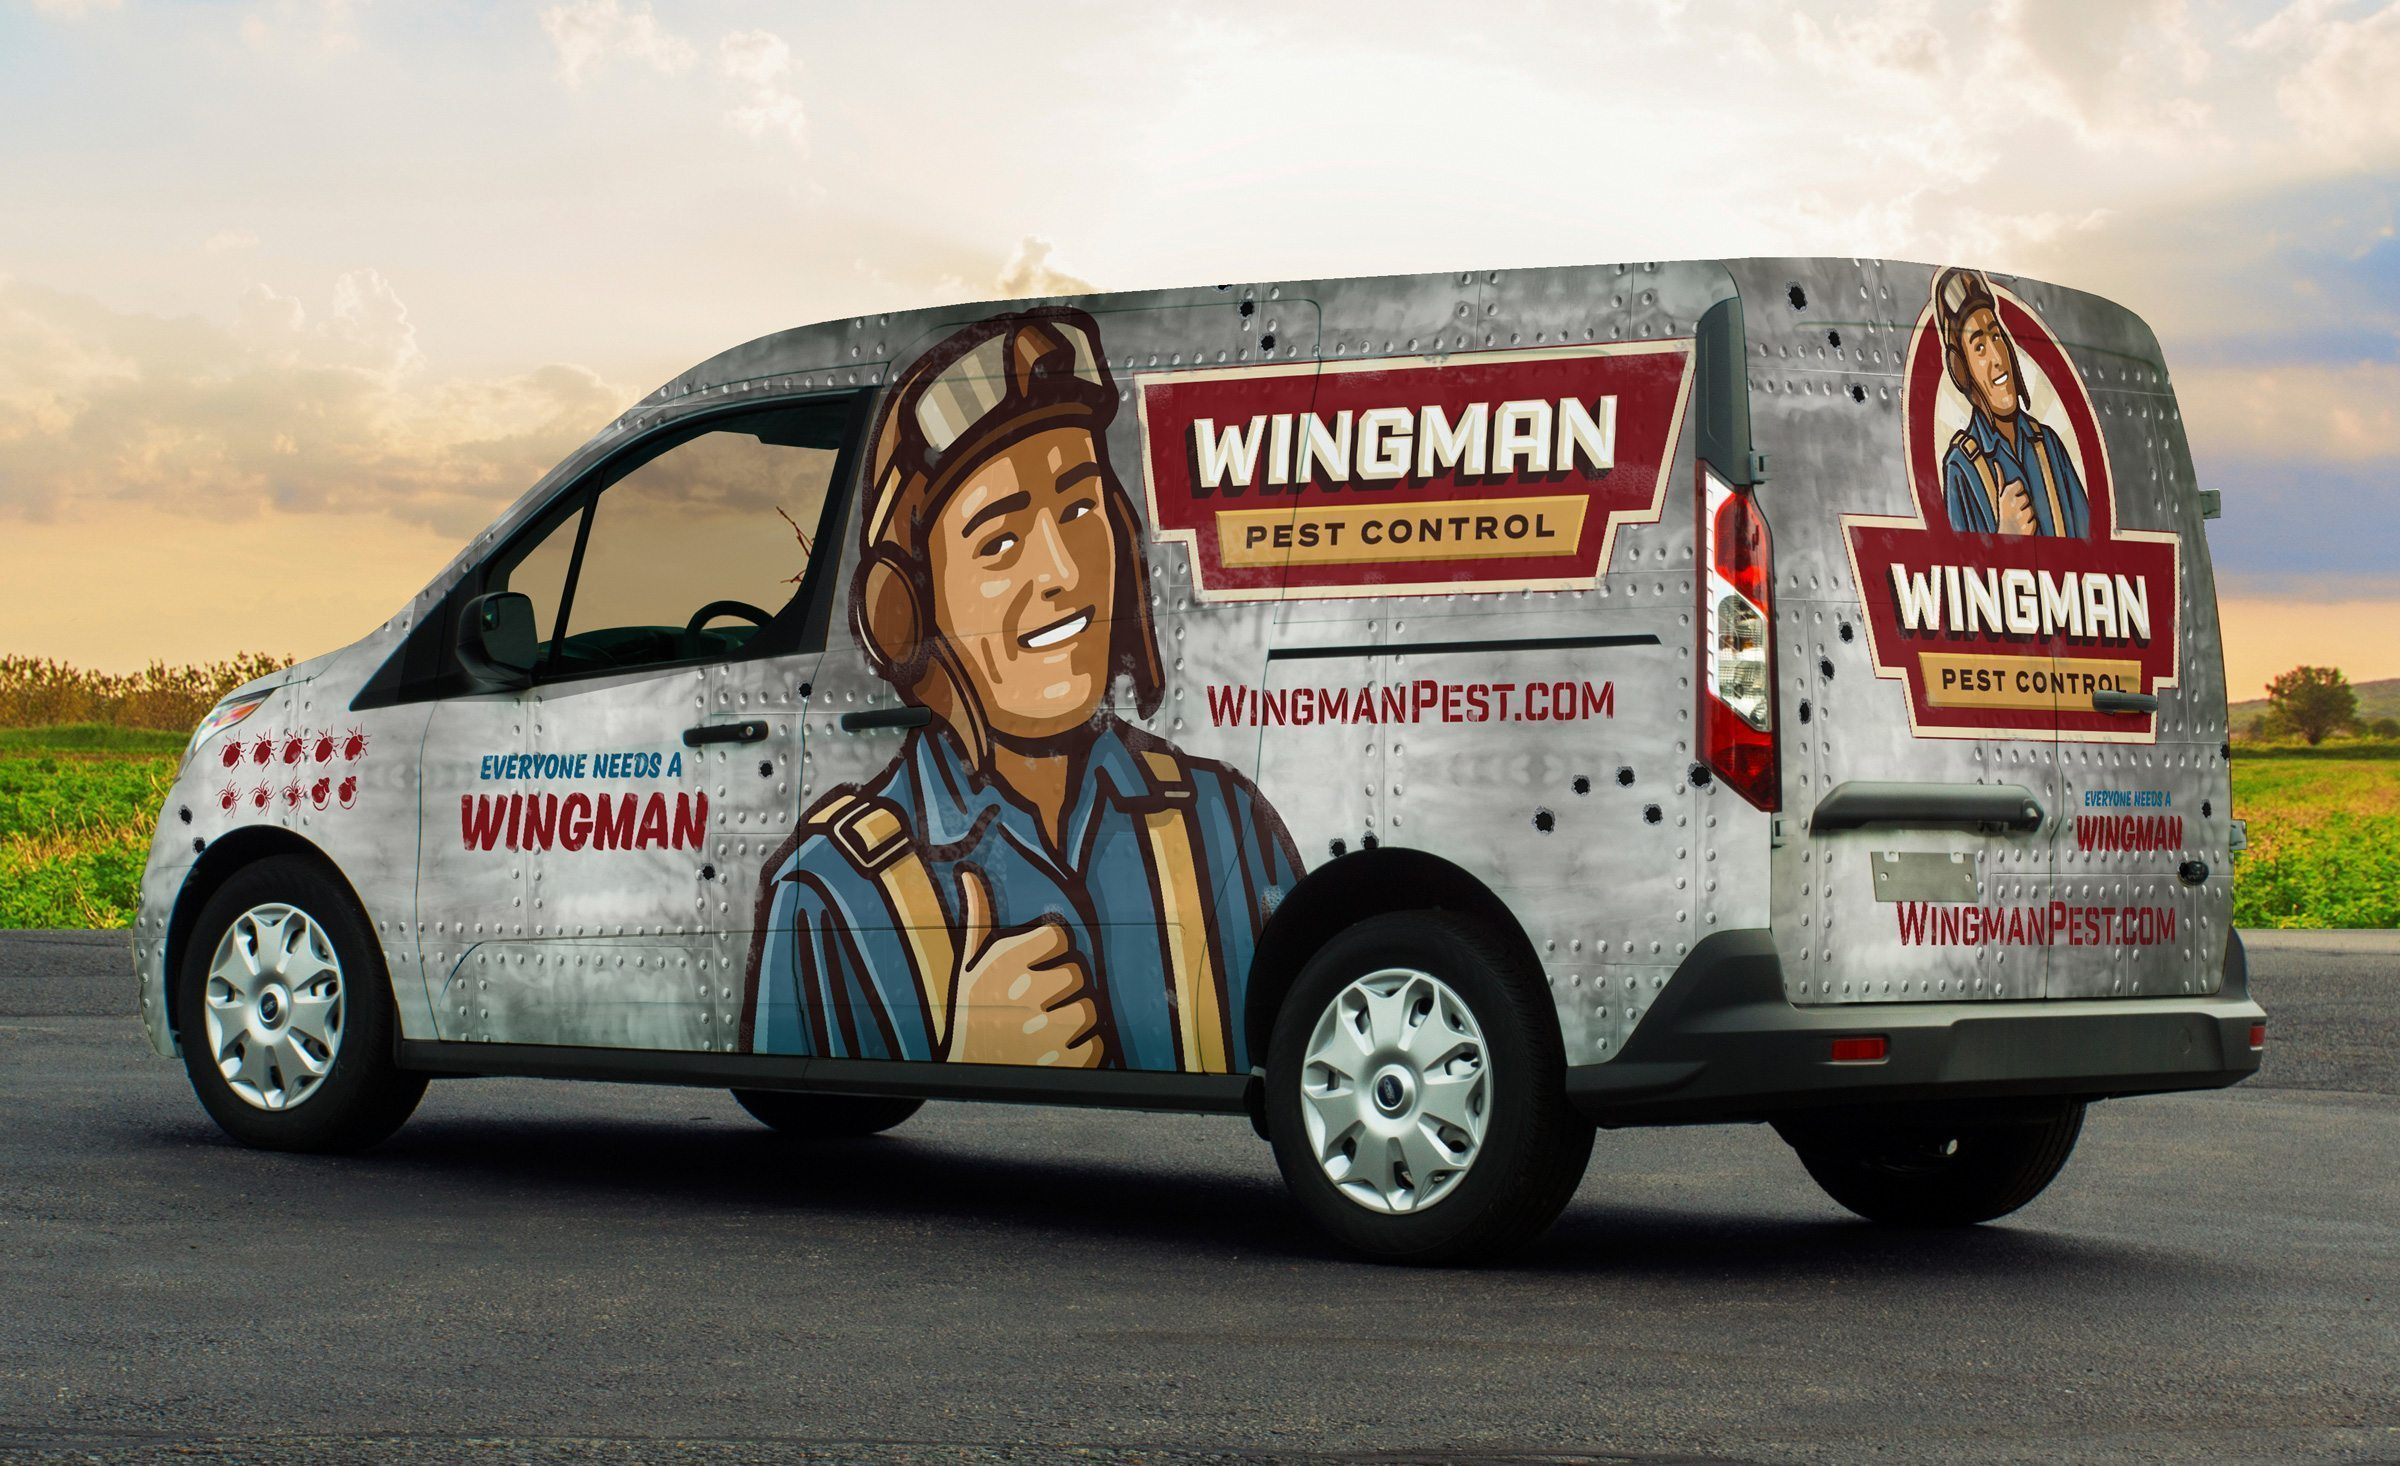 Vehicle wrap design for this Michigan-based pest control company.